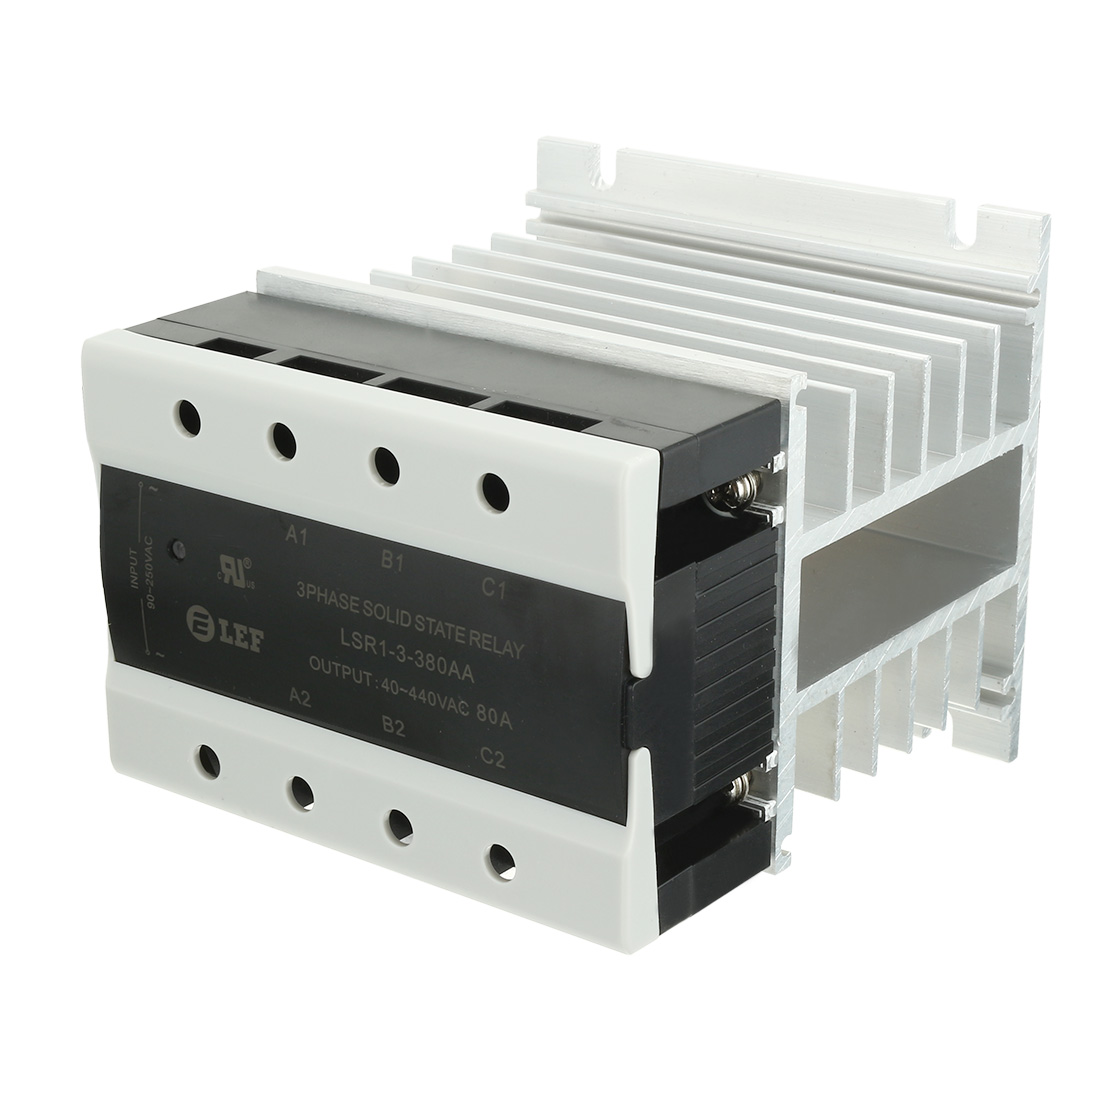 AC to AC 80A 90-250VAC to 40-440VAC SSR 3 Phase Solid State Relay + Heat Sink